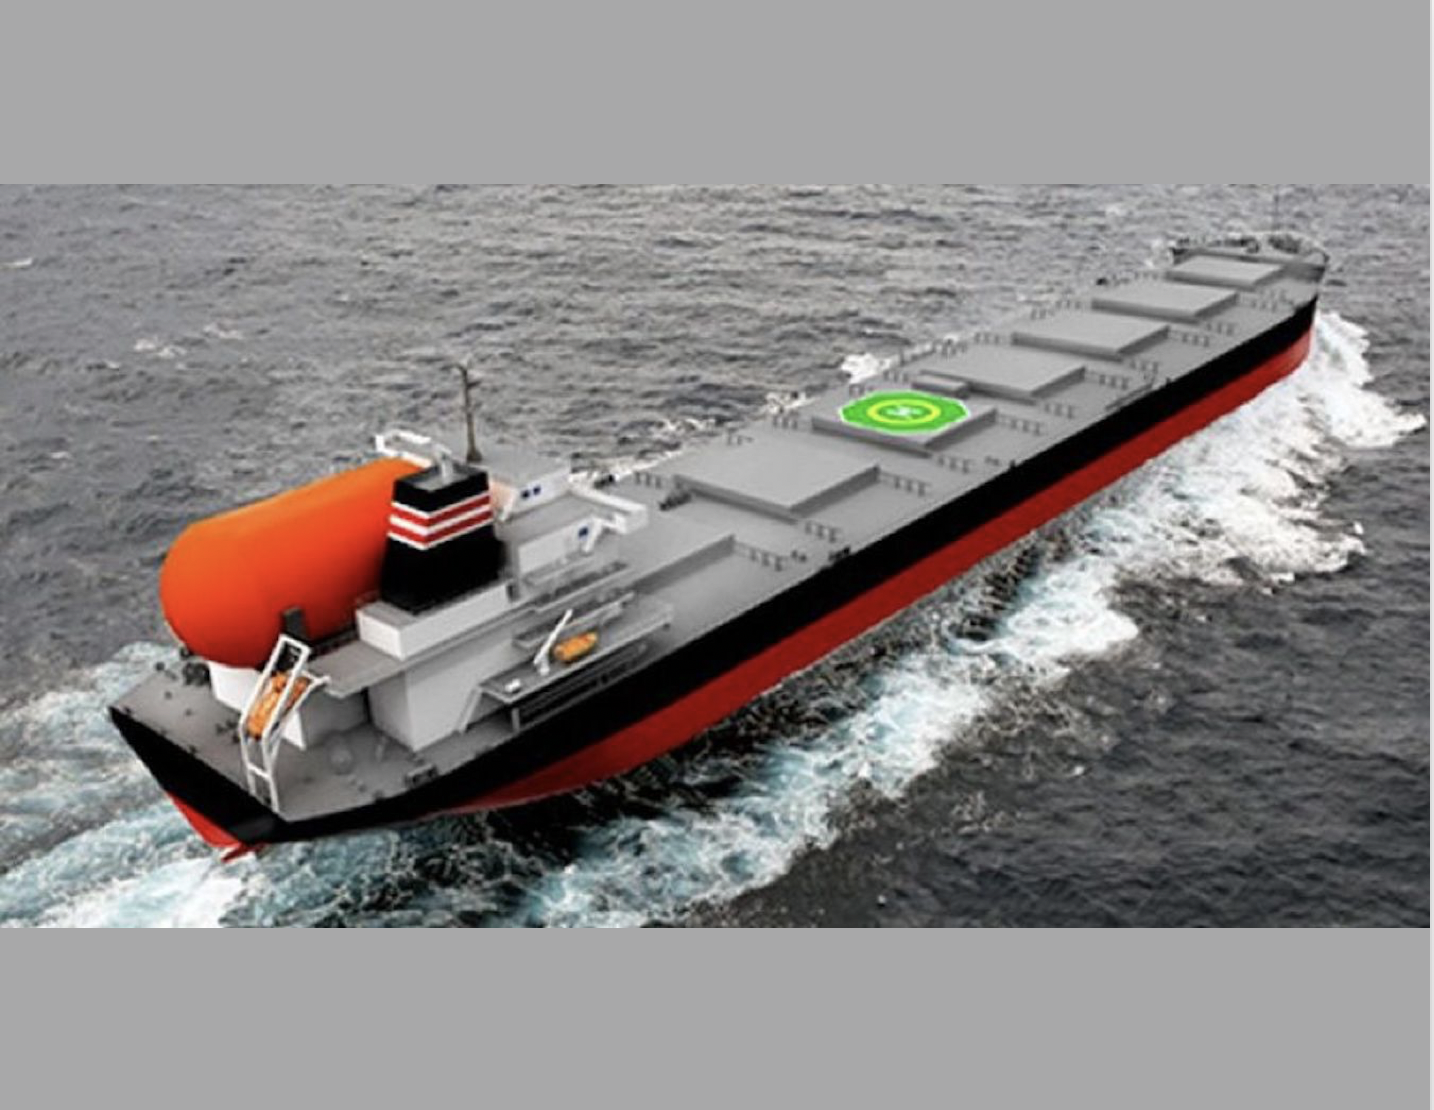 Gloryholder Liquified Gas Machinery to supply LNG bunker system to Japanese bulk carrier